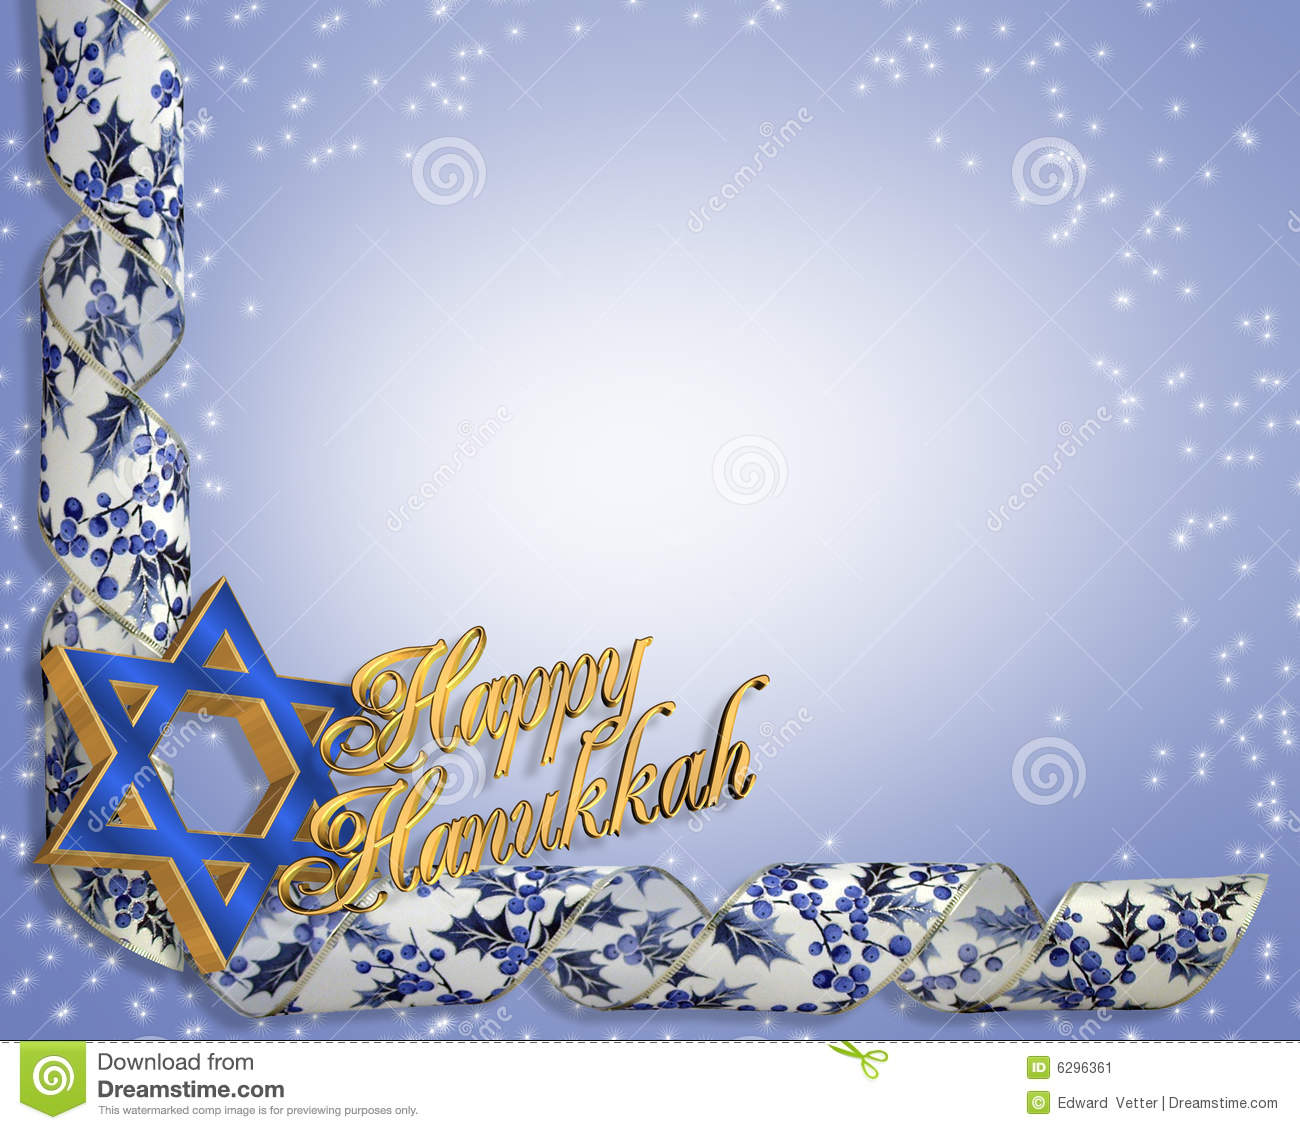 Dimensional illustration composition Hanukkah card or background.